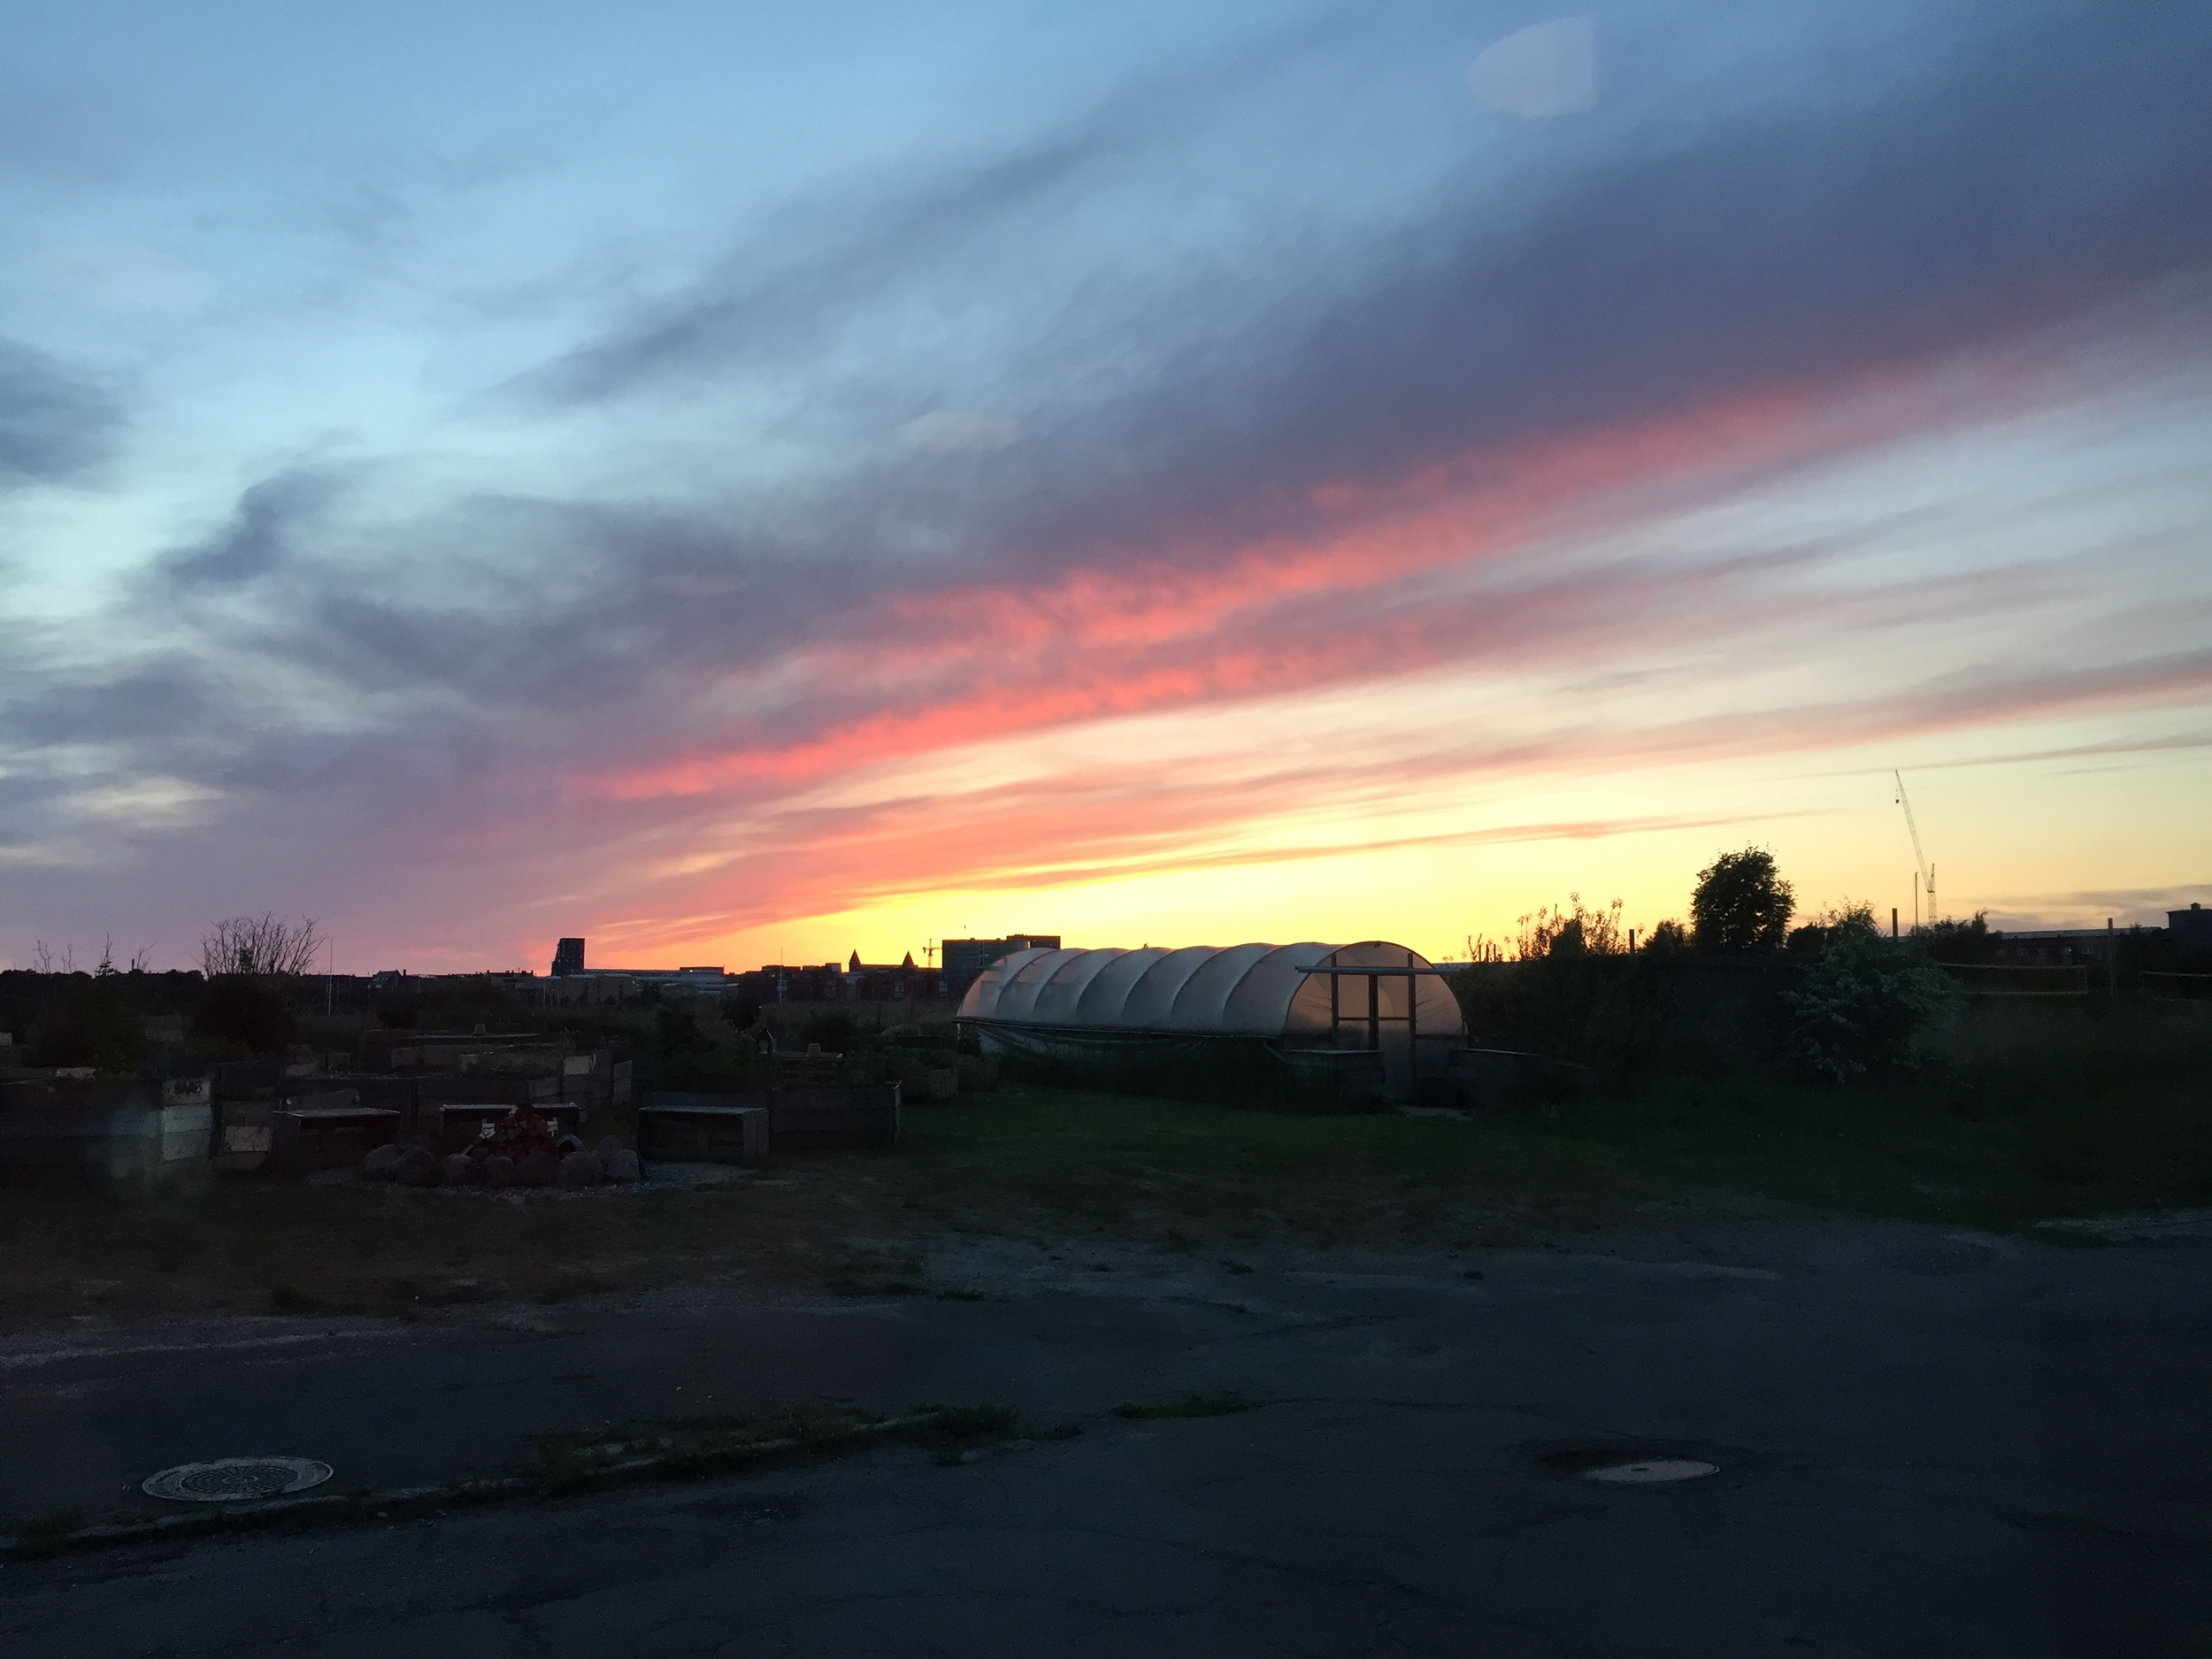 Sunset at 10 pm at Amass, a farm-to-table restaurant